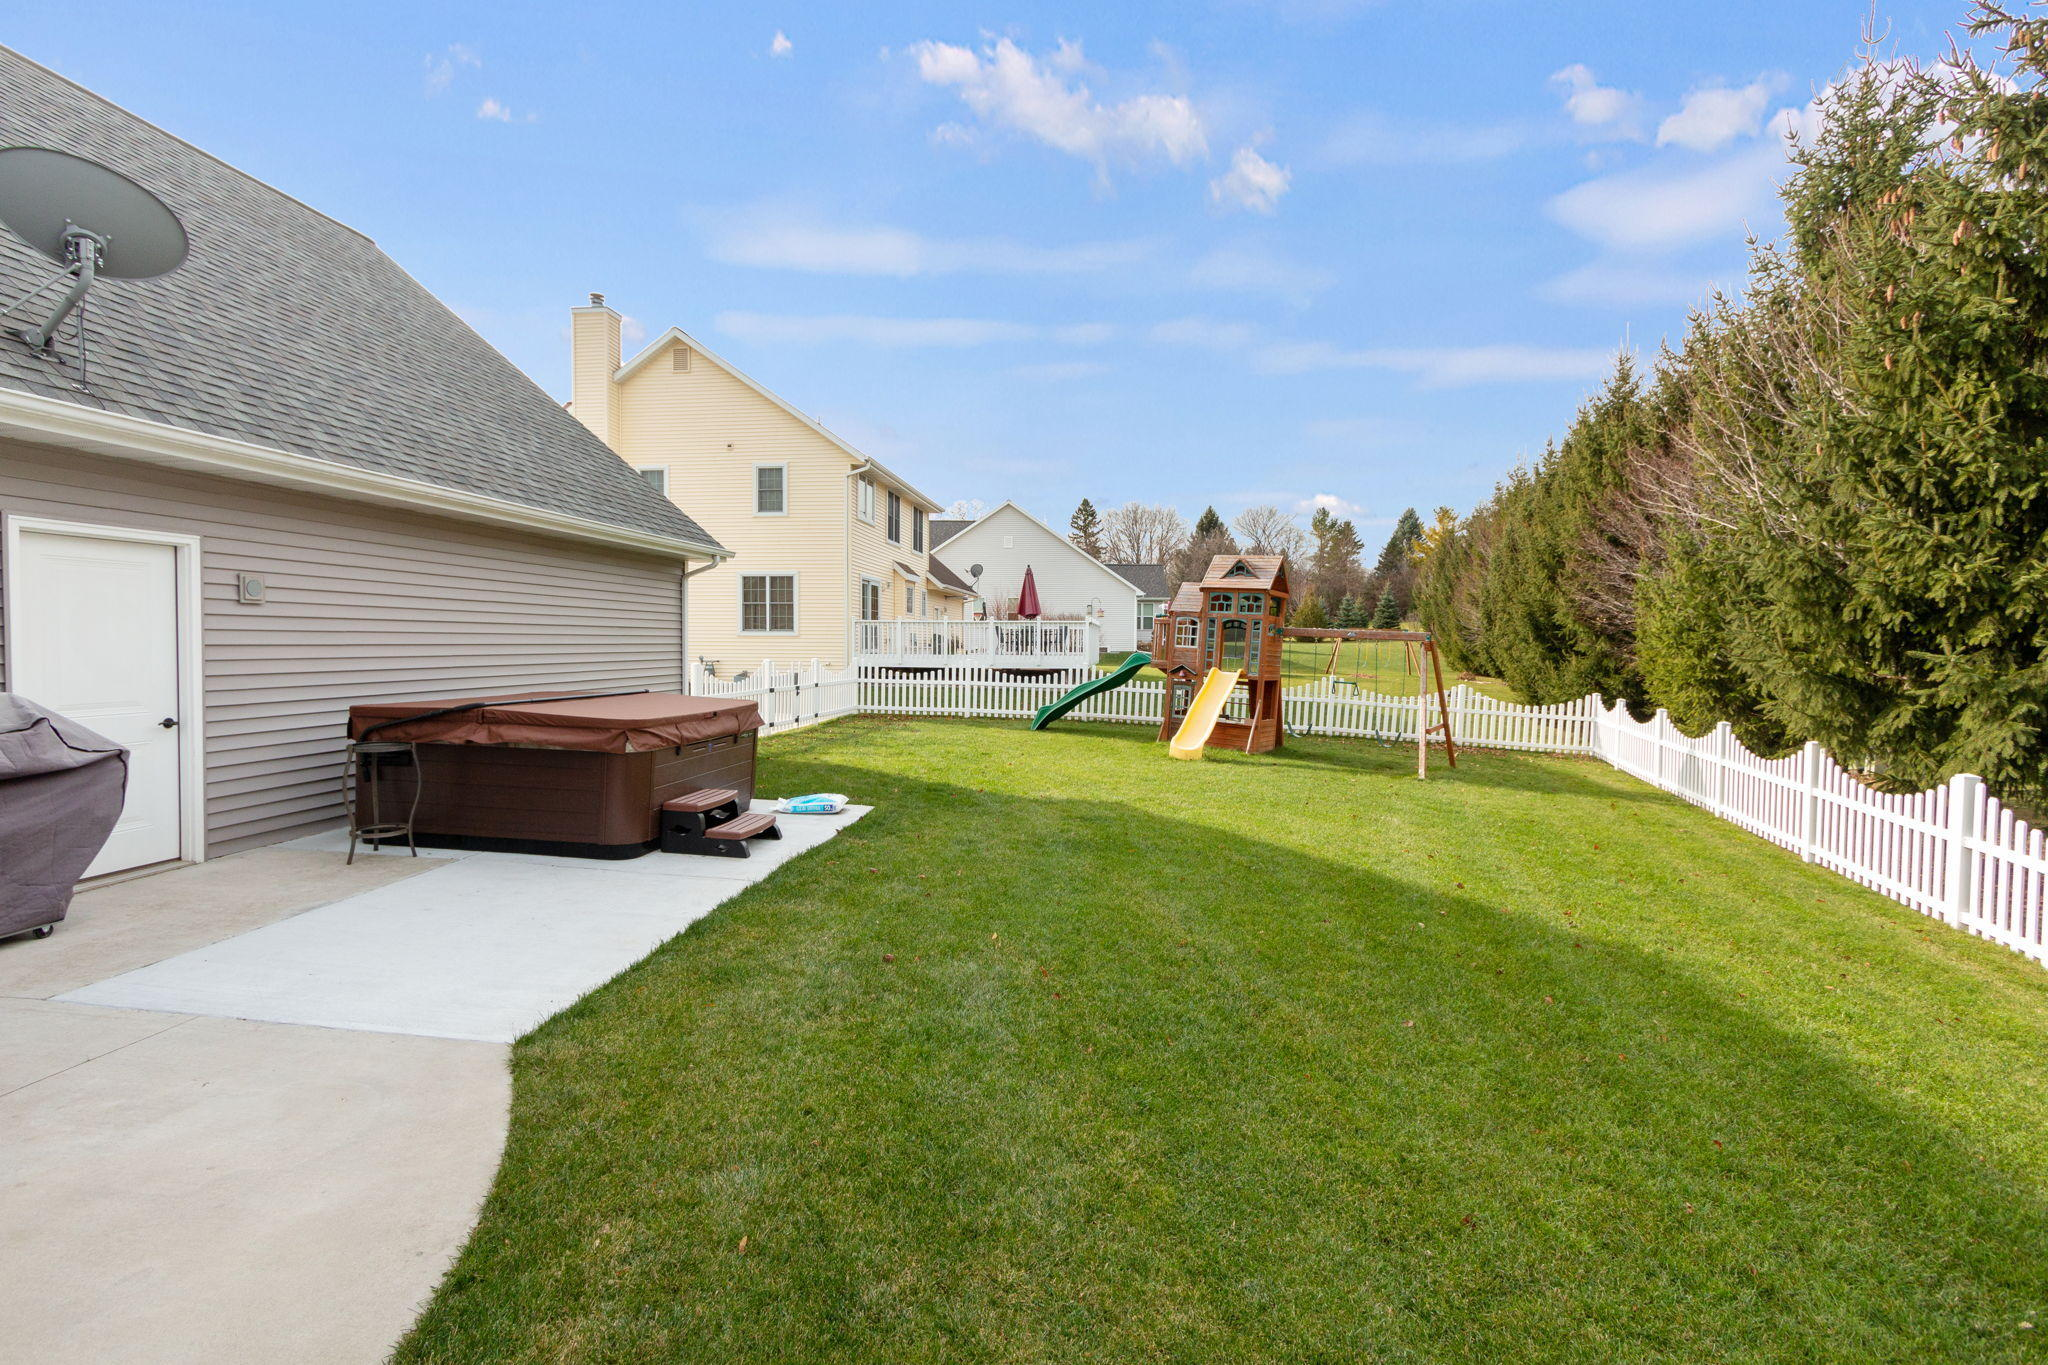 1204 Upper Greystone Dr, Plymouth, Wisconsin 53073, 3 Bedrooms Bedrooms, 9 Rooms Rooms,3 BathroomsBathrooms,Single-family,For Sale,Upper Greystone Dr,1722963